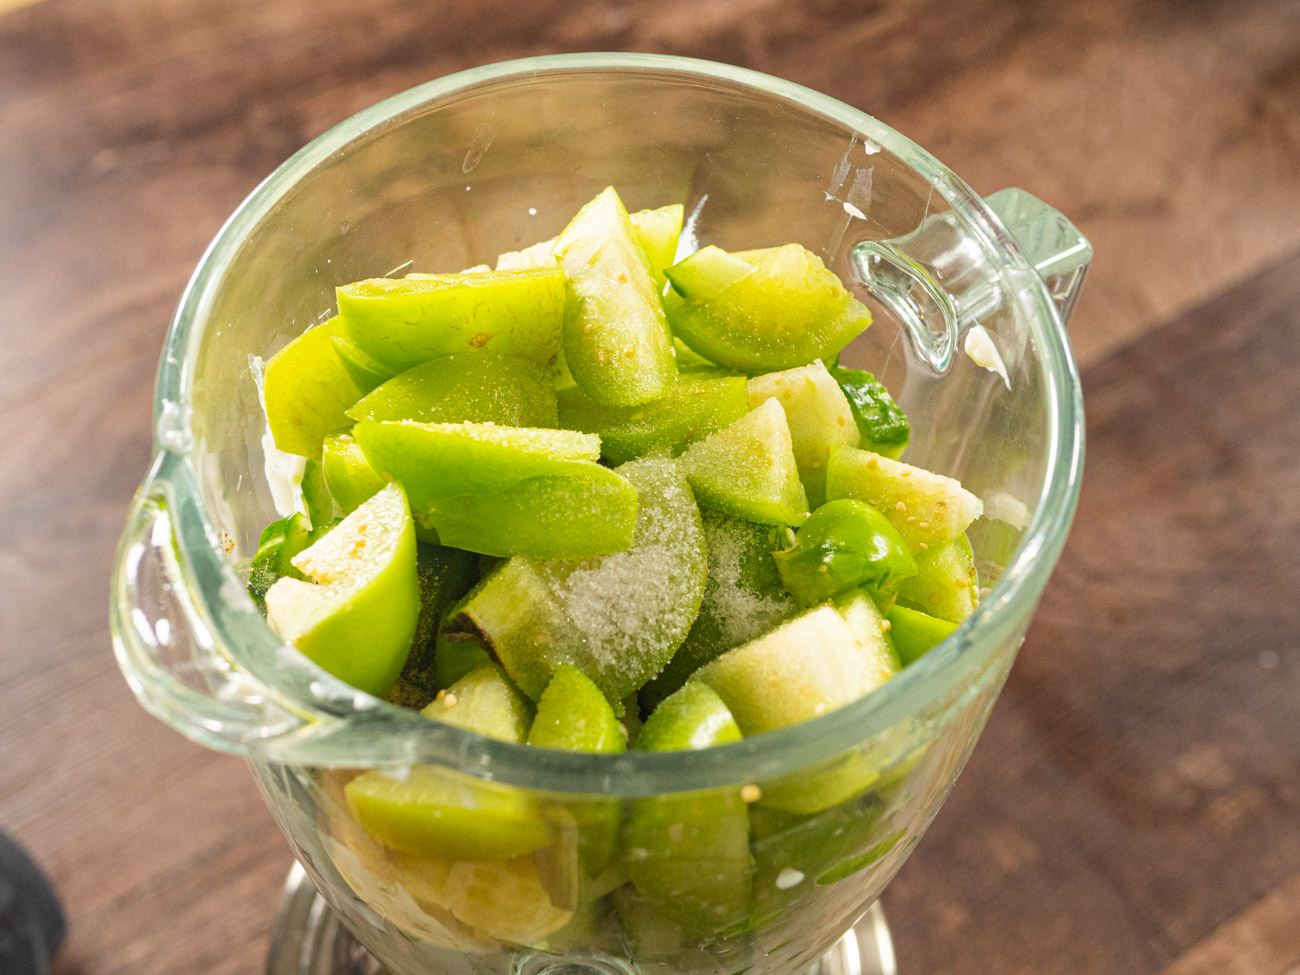 Add yogurt and bread mixture to blender or food processor. To this add cucumber, salt, pepper, sugar, and diced tomatillos.